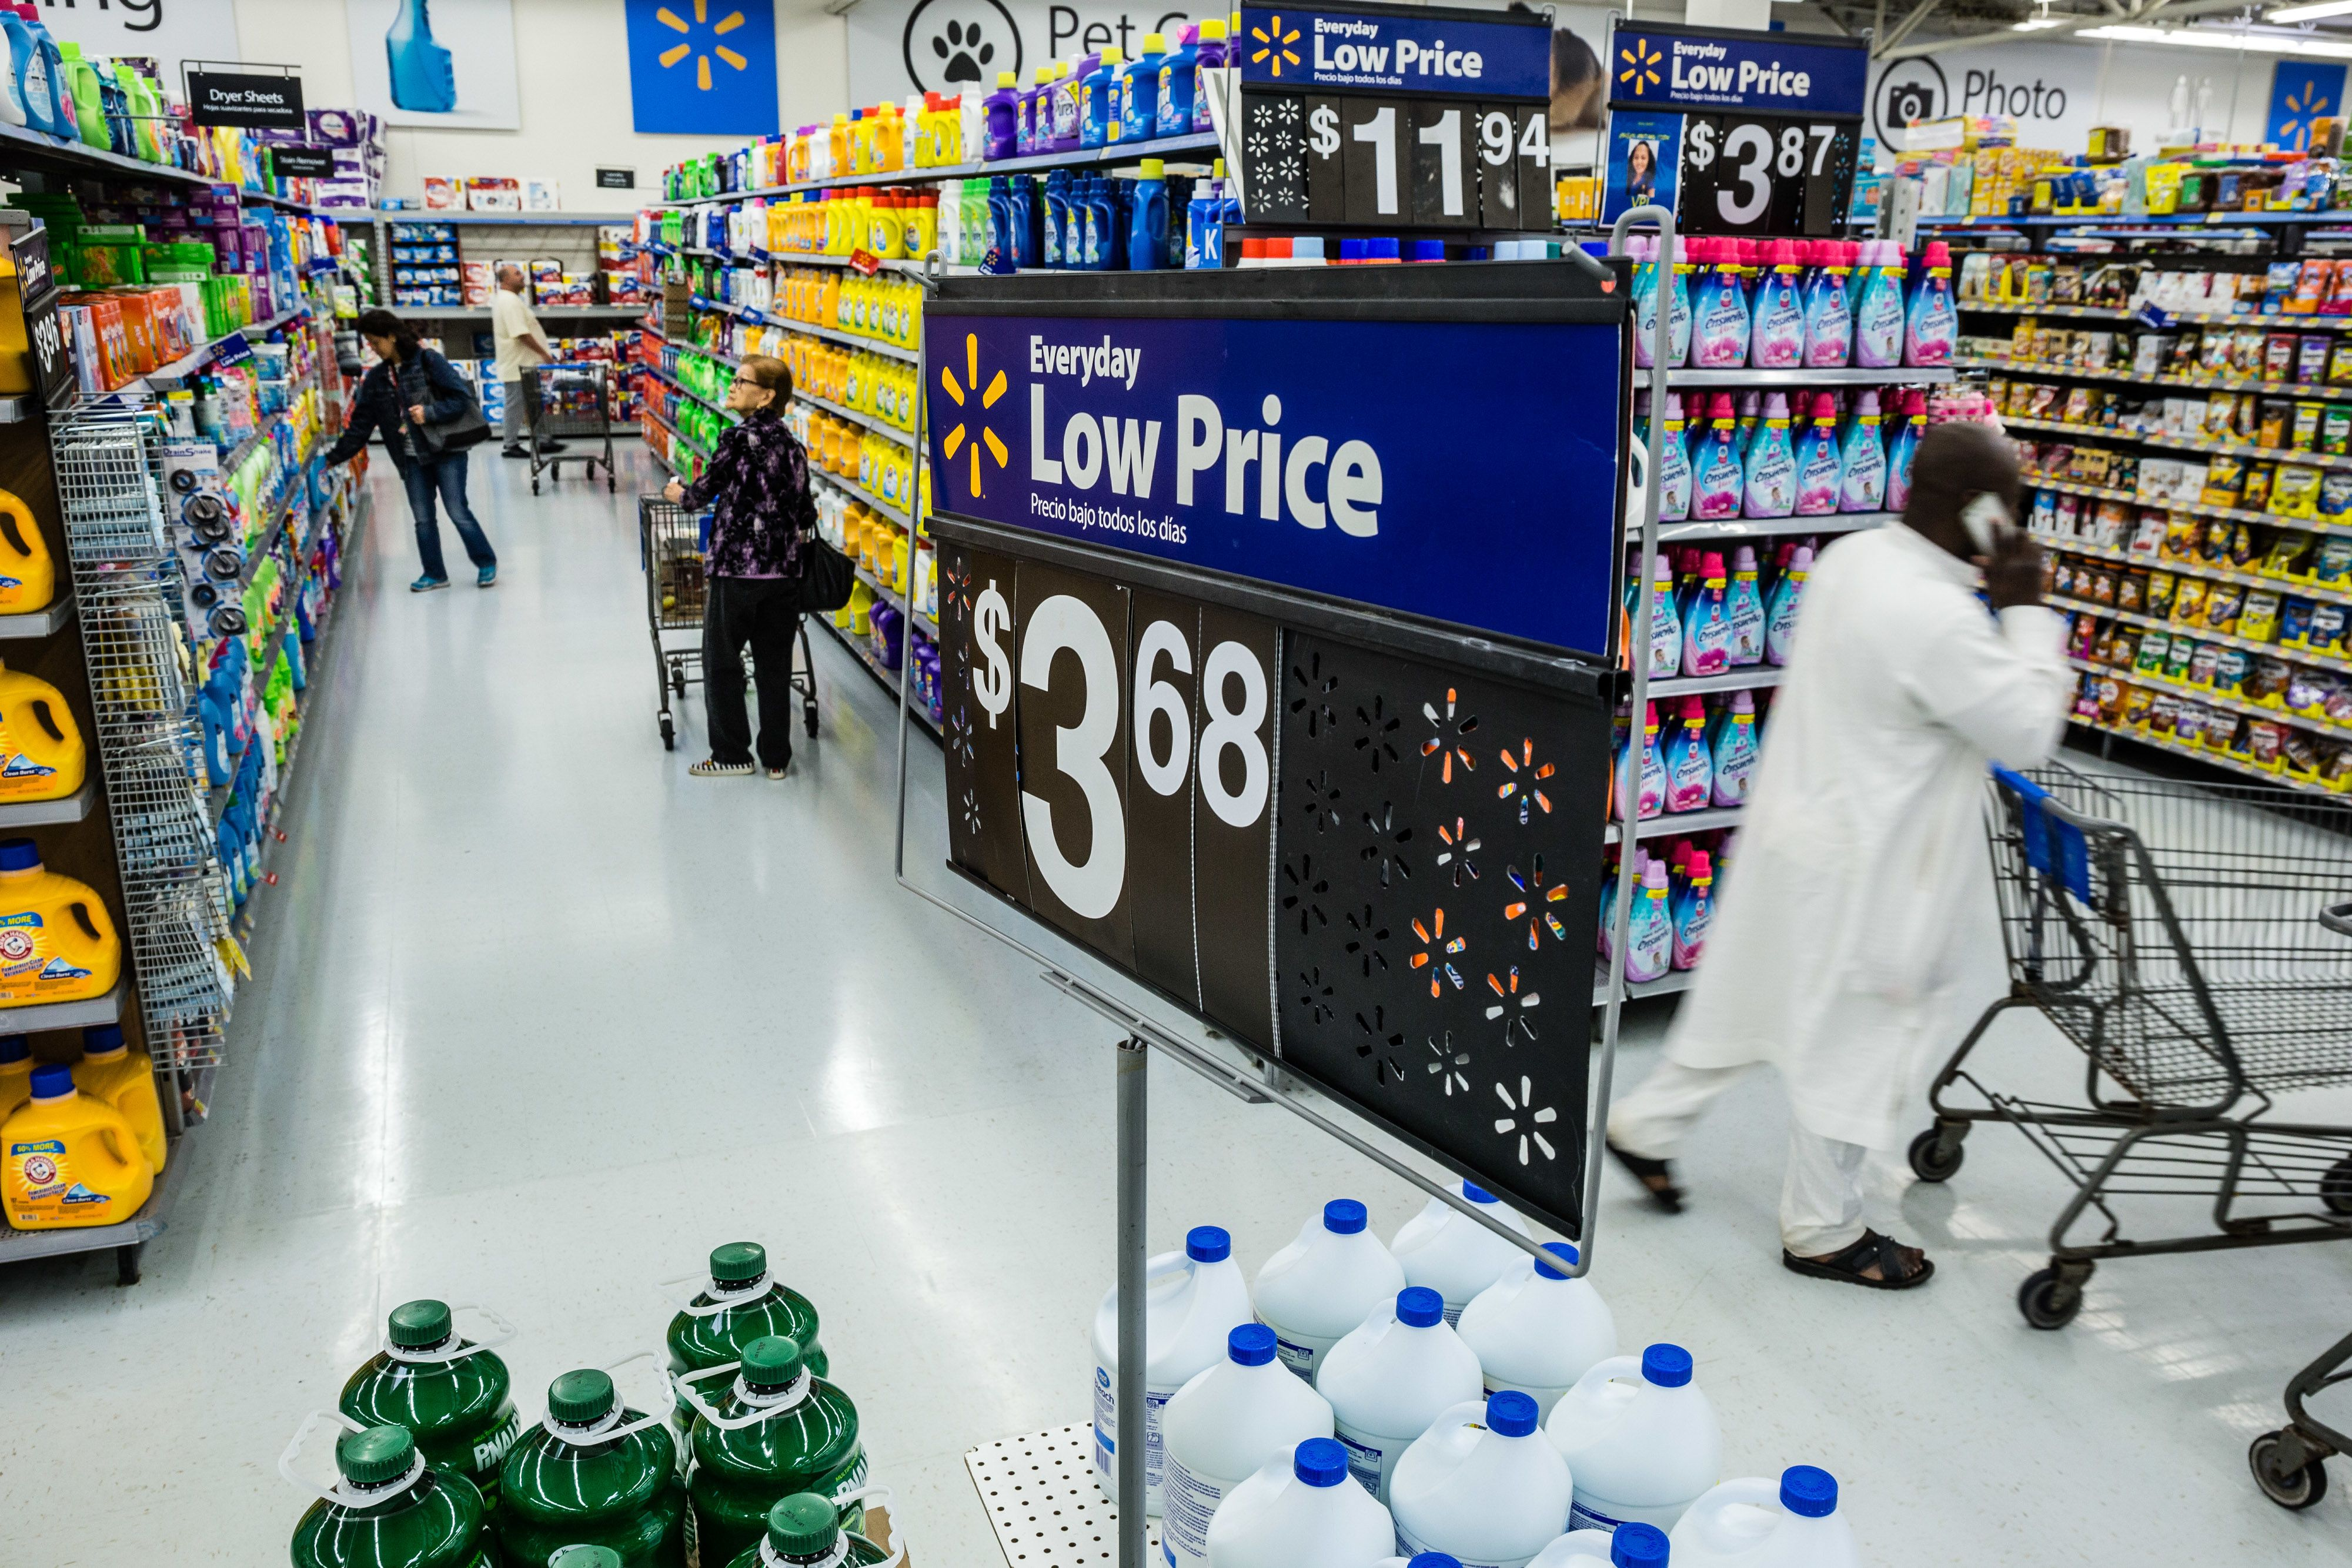 Walmart reports first quarter earnings for fiscal 2020